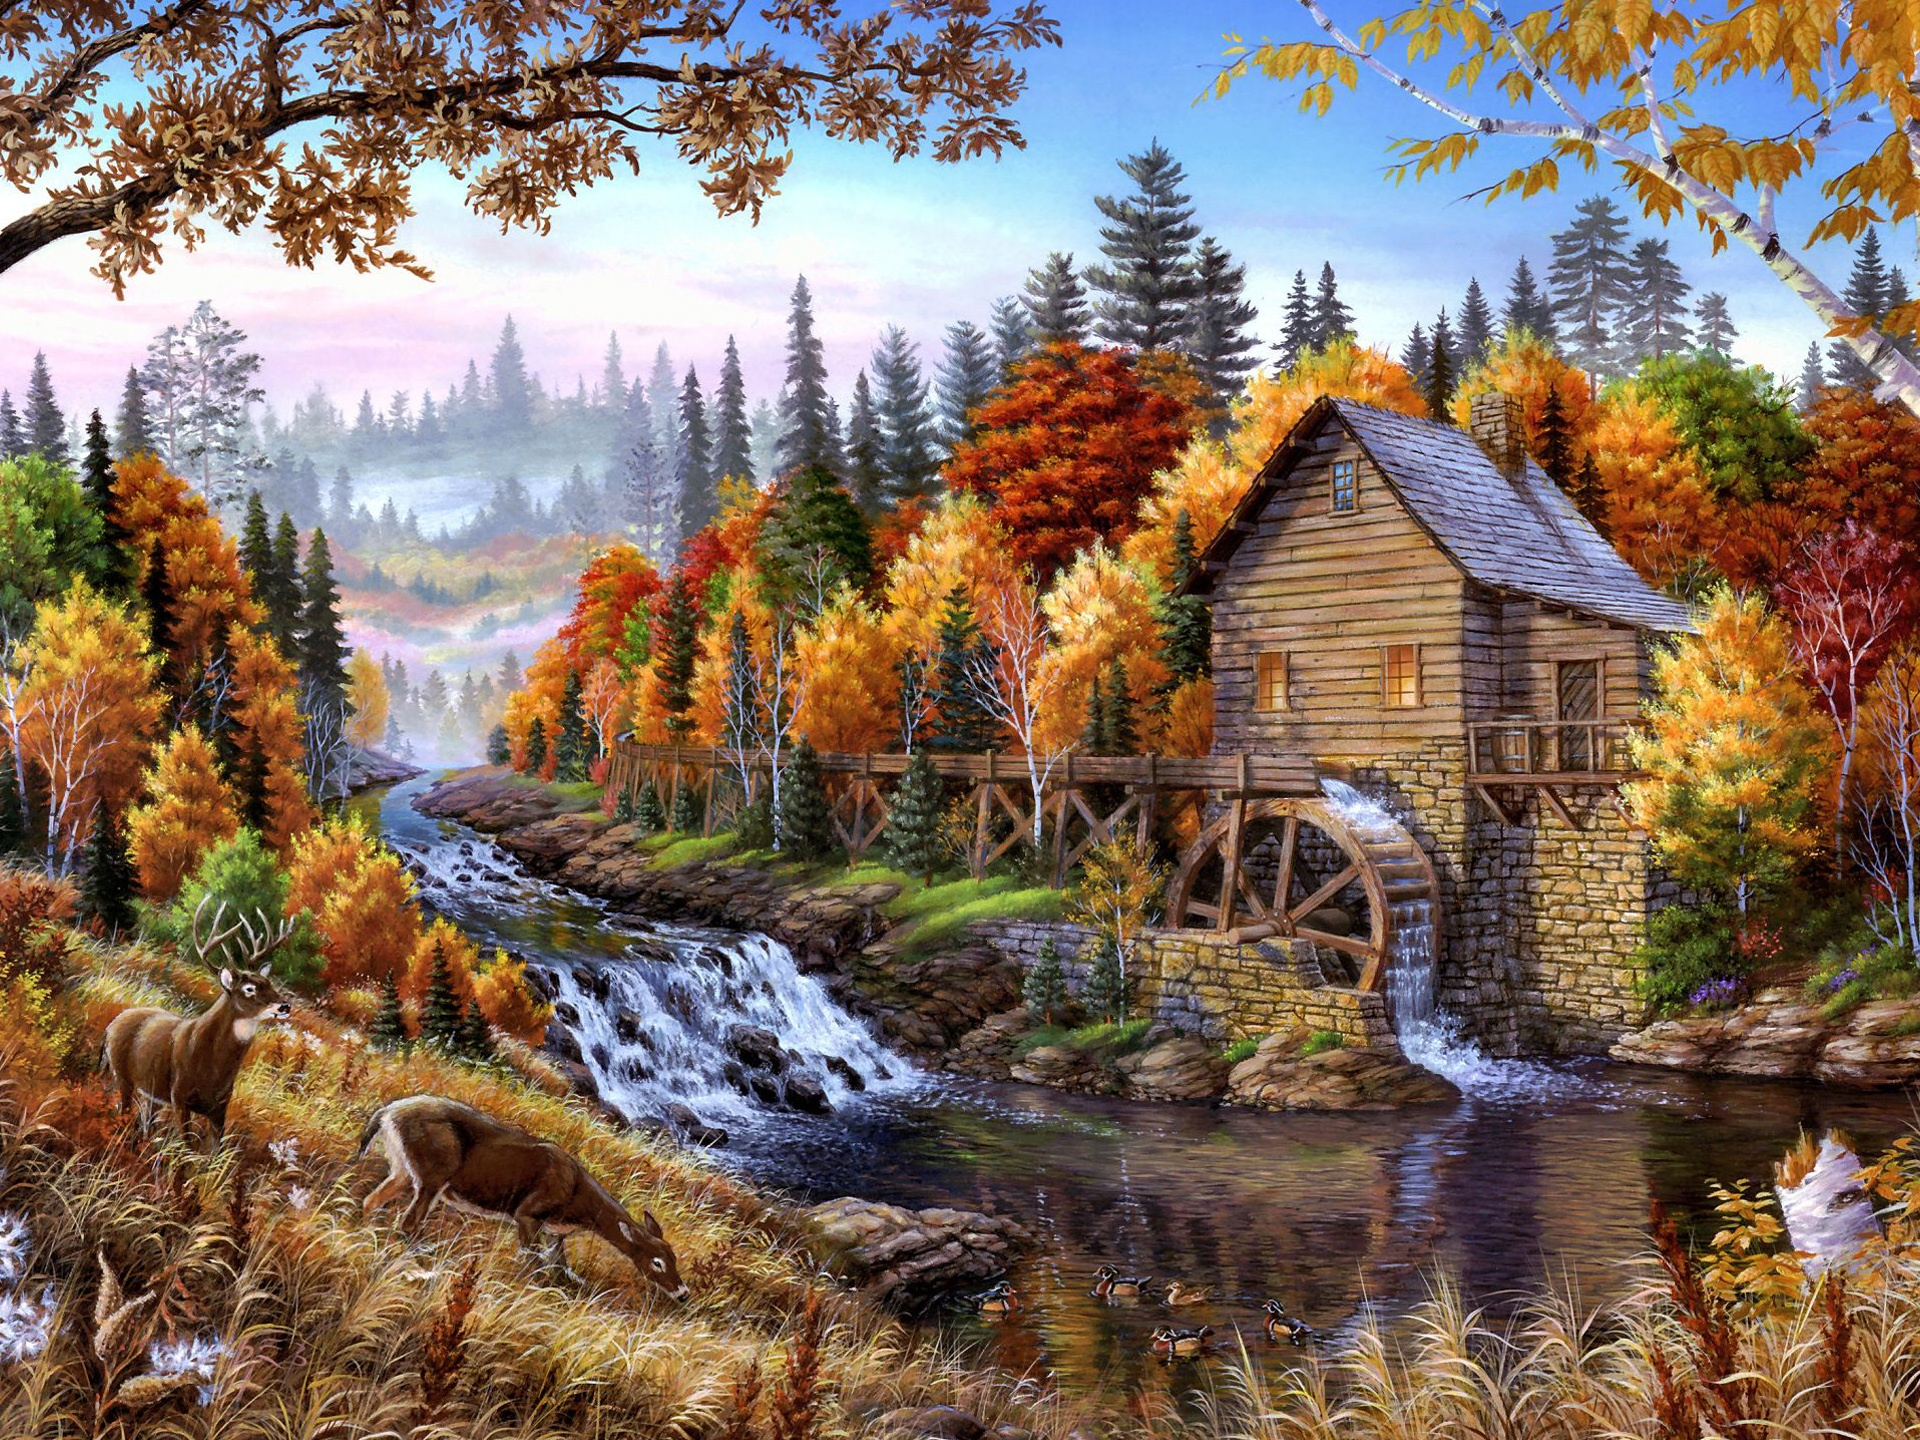 Hd Motorcycle Wallpaper Widescreen Wallpaper Home In The Forest Oil Painting 2560x1440 Qhd